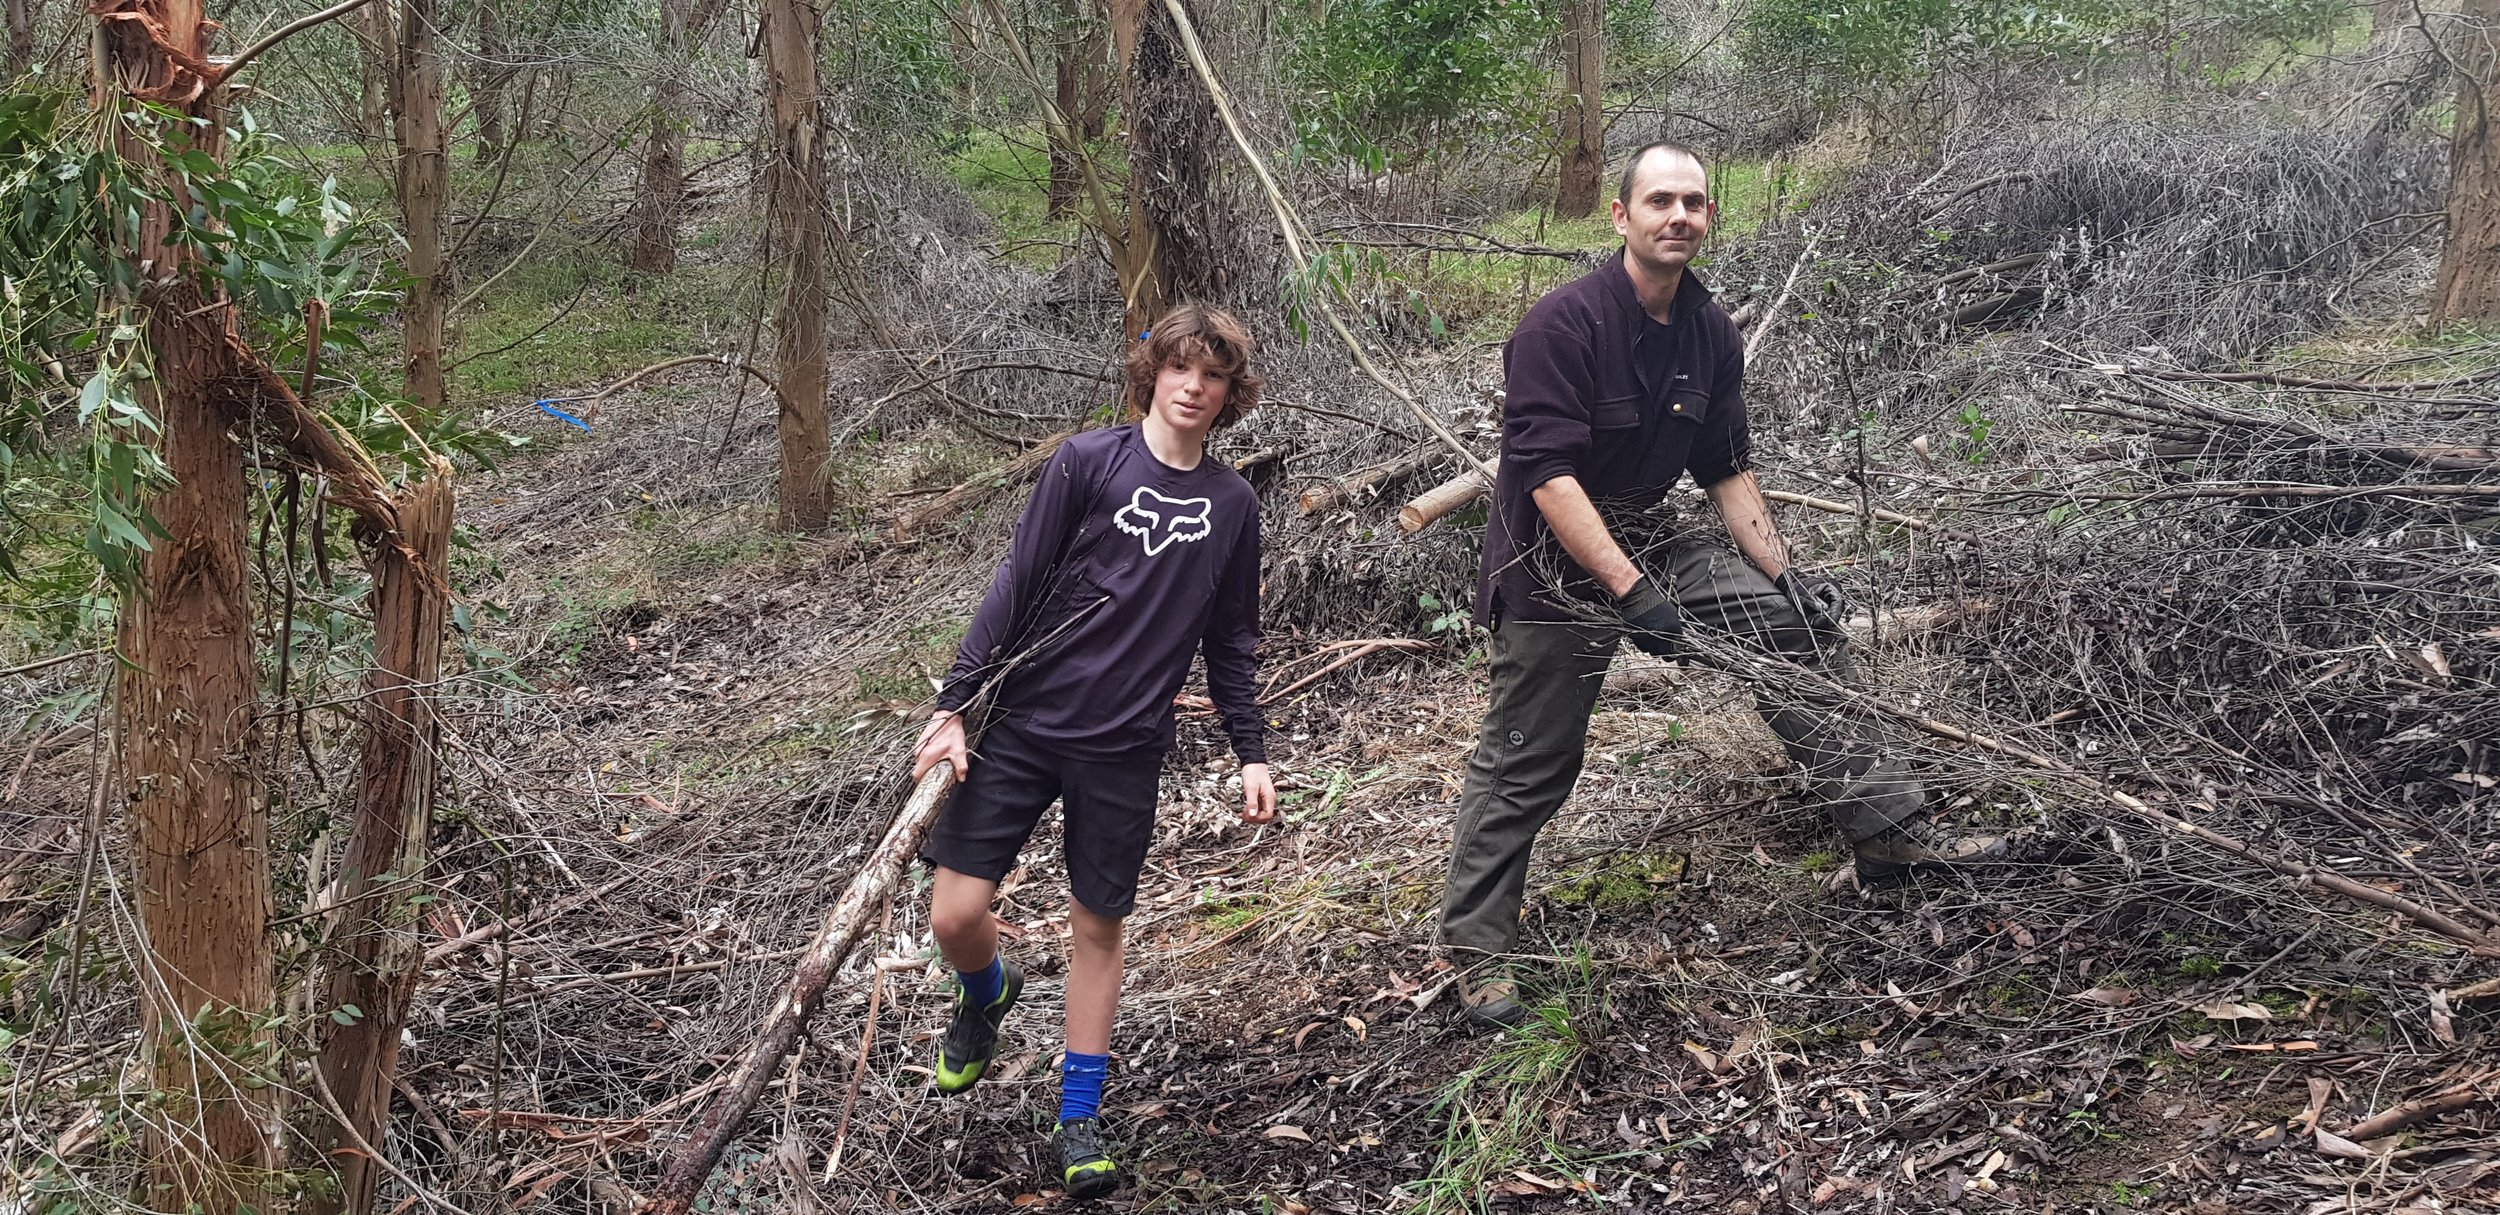 New trails at Gum Tree Mountain Bike park